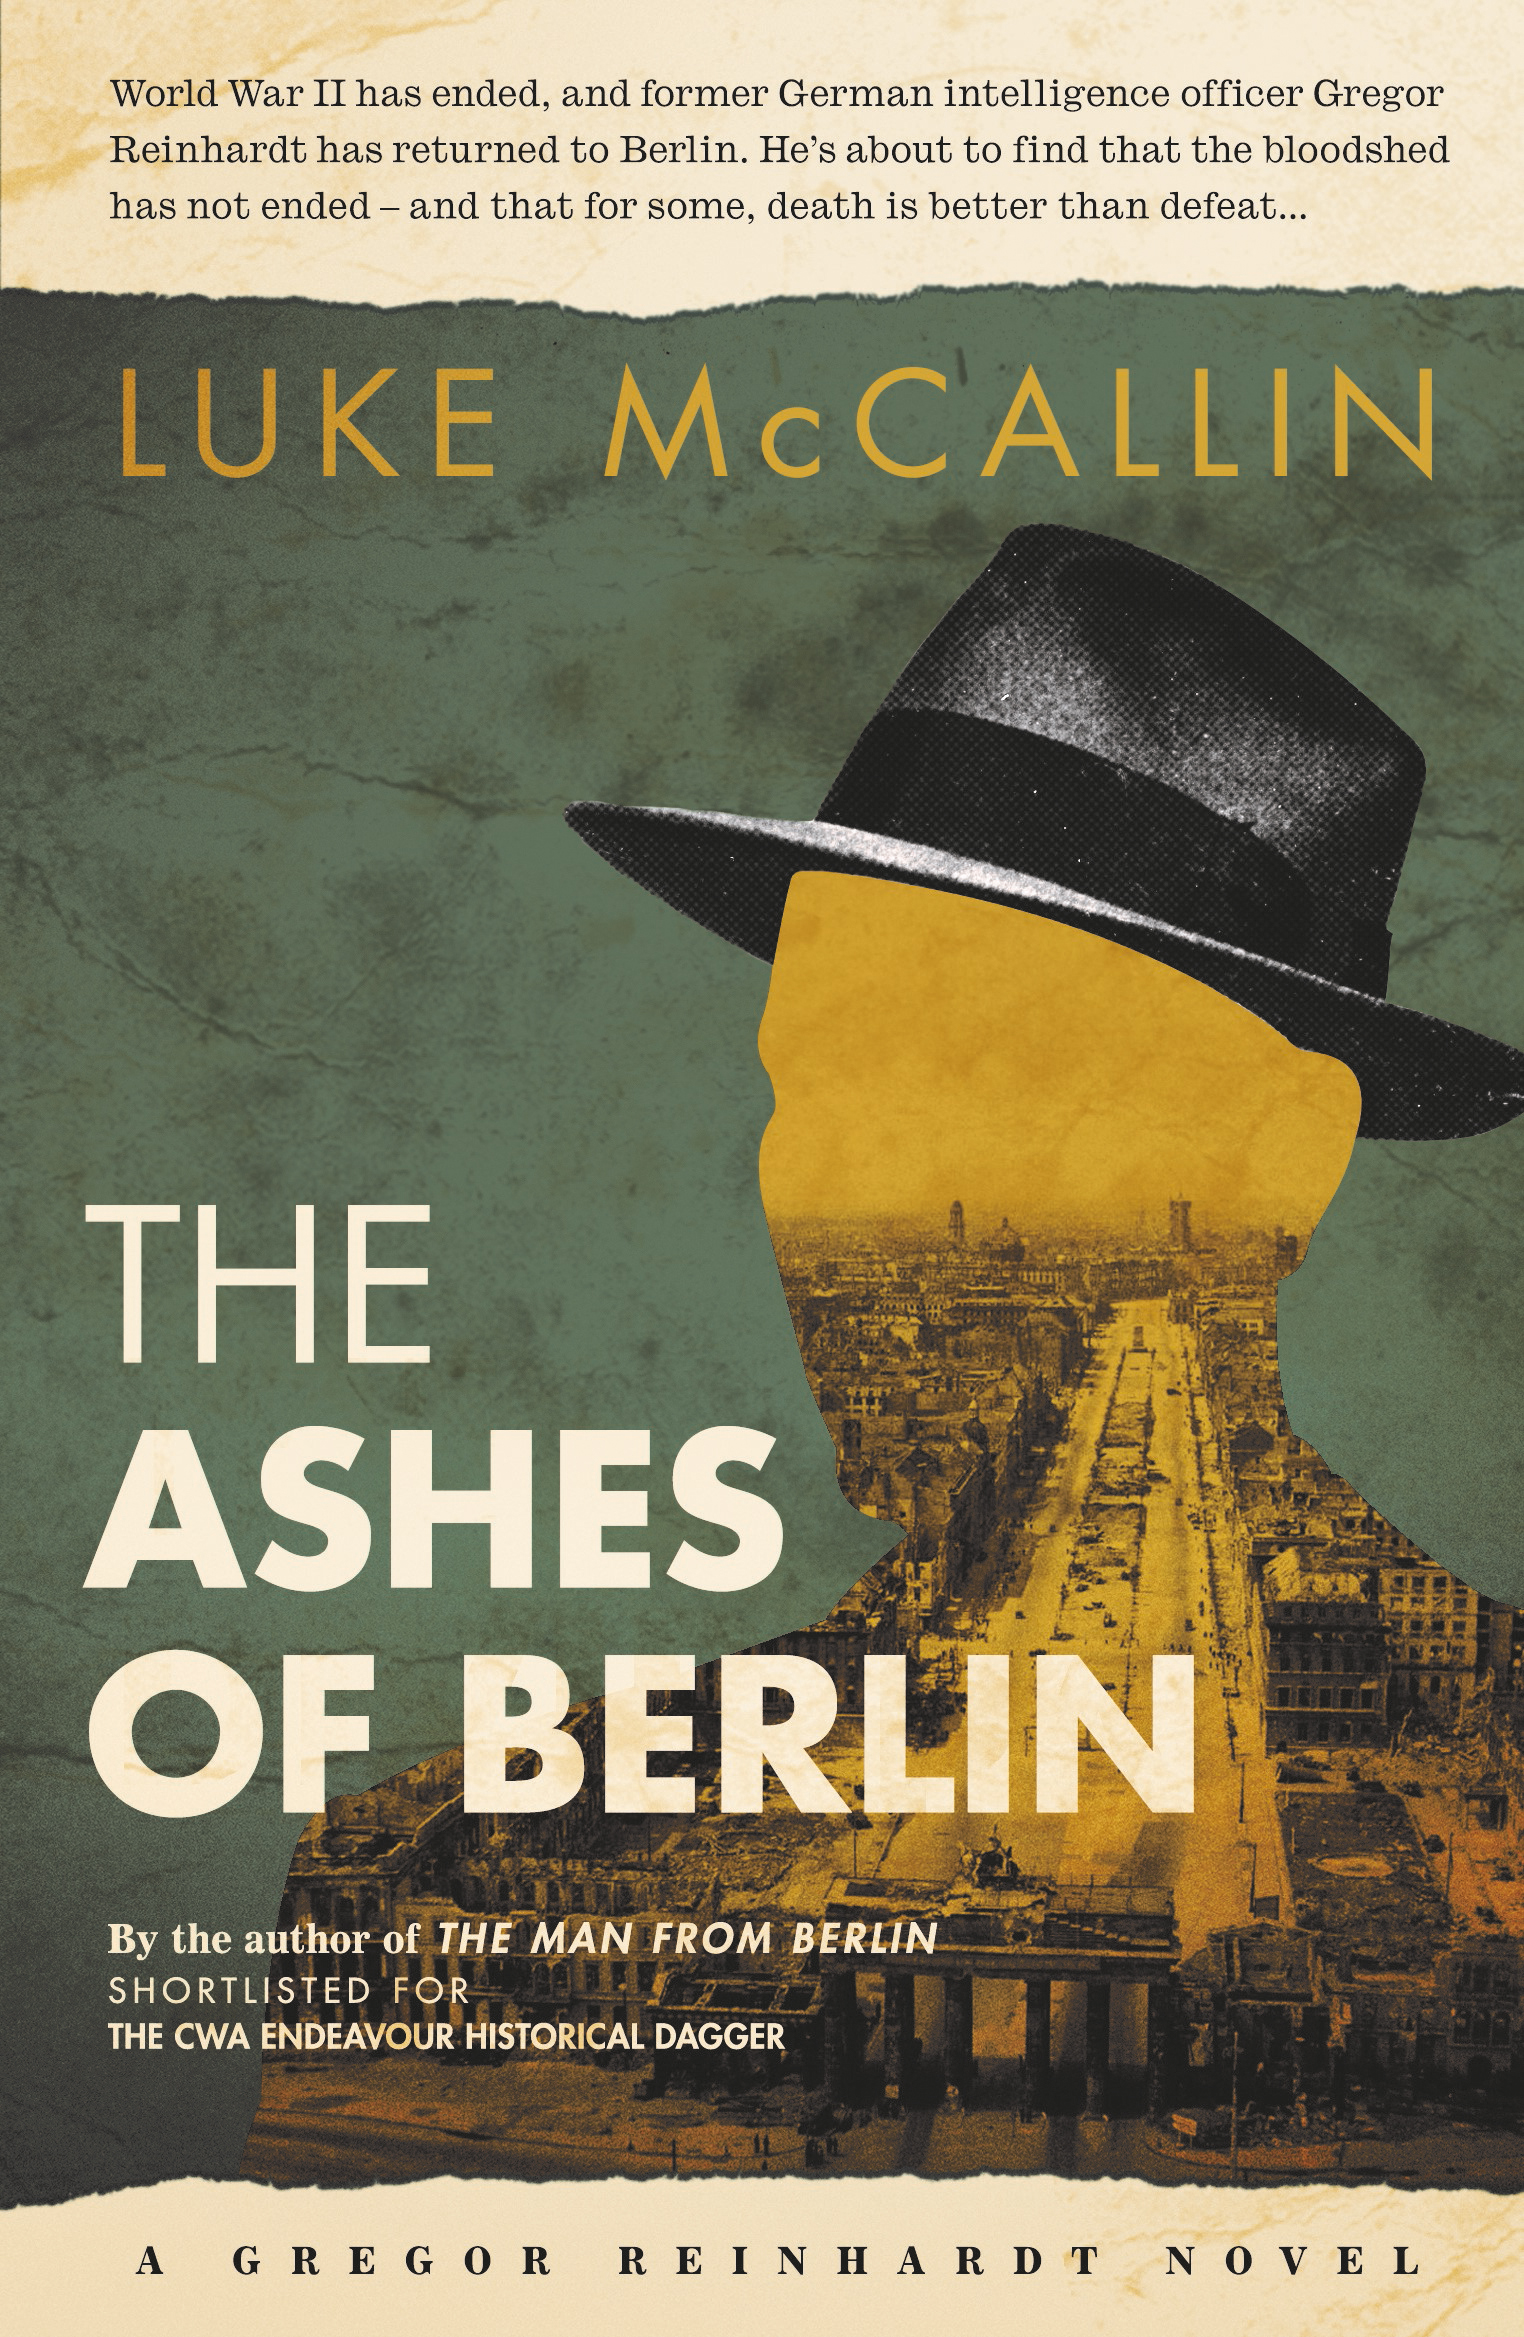 The Ashes of Berlin – Luke McCallin [book offer]